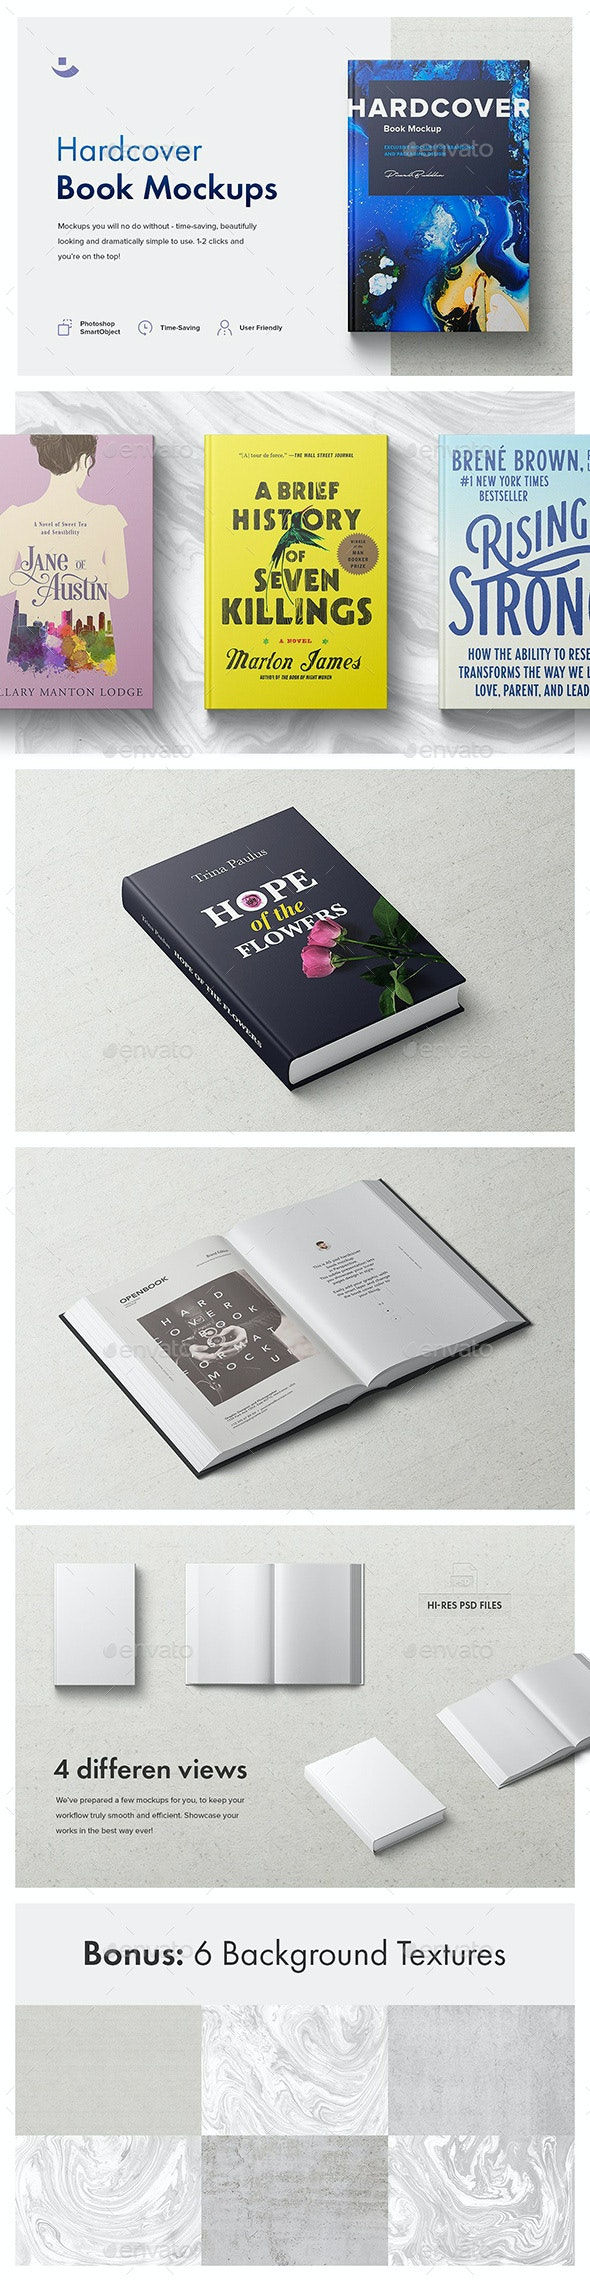 Hardcover Book Mockup Set - Books Print